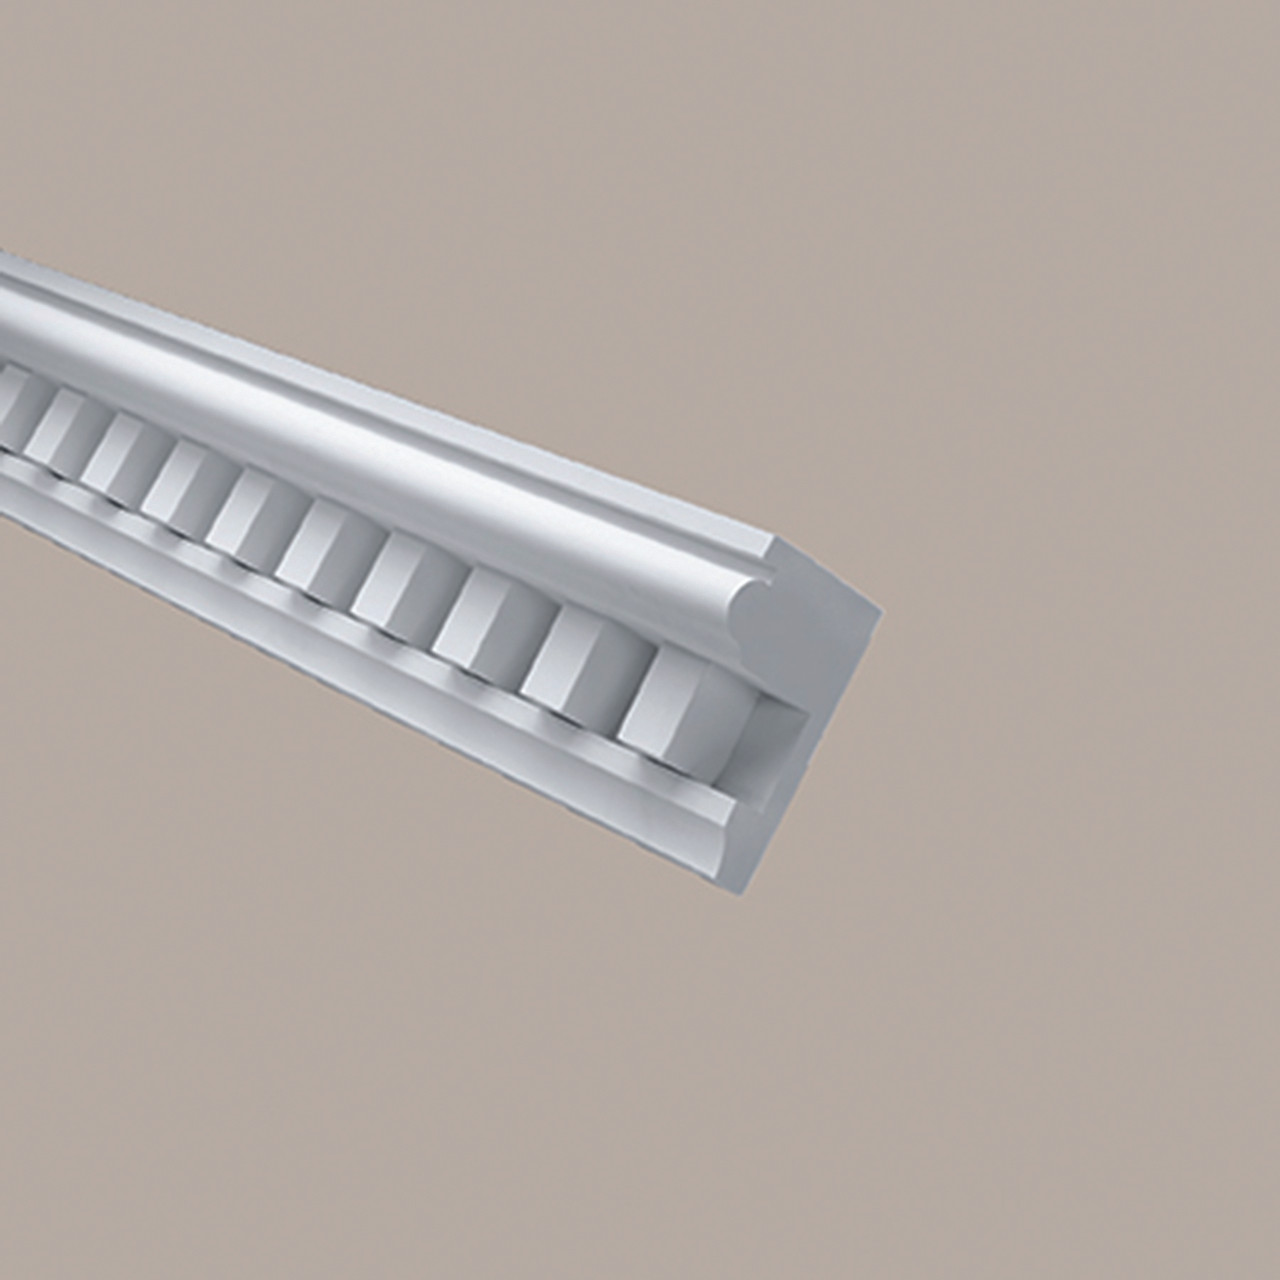 Mld362 16 for Fypon quick rail